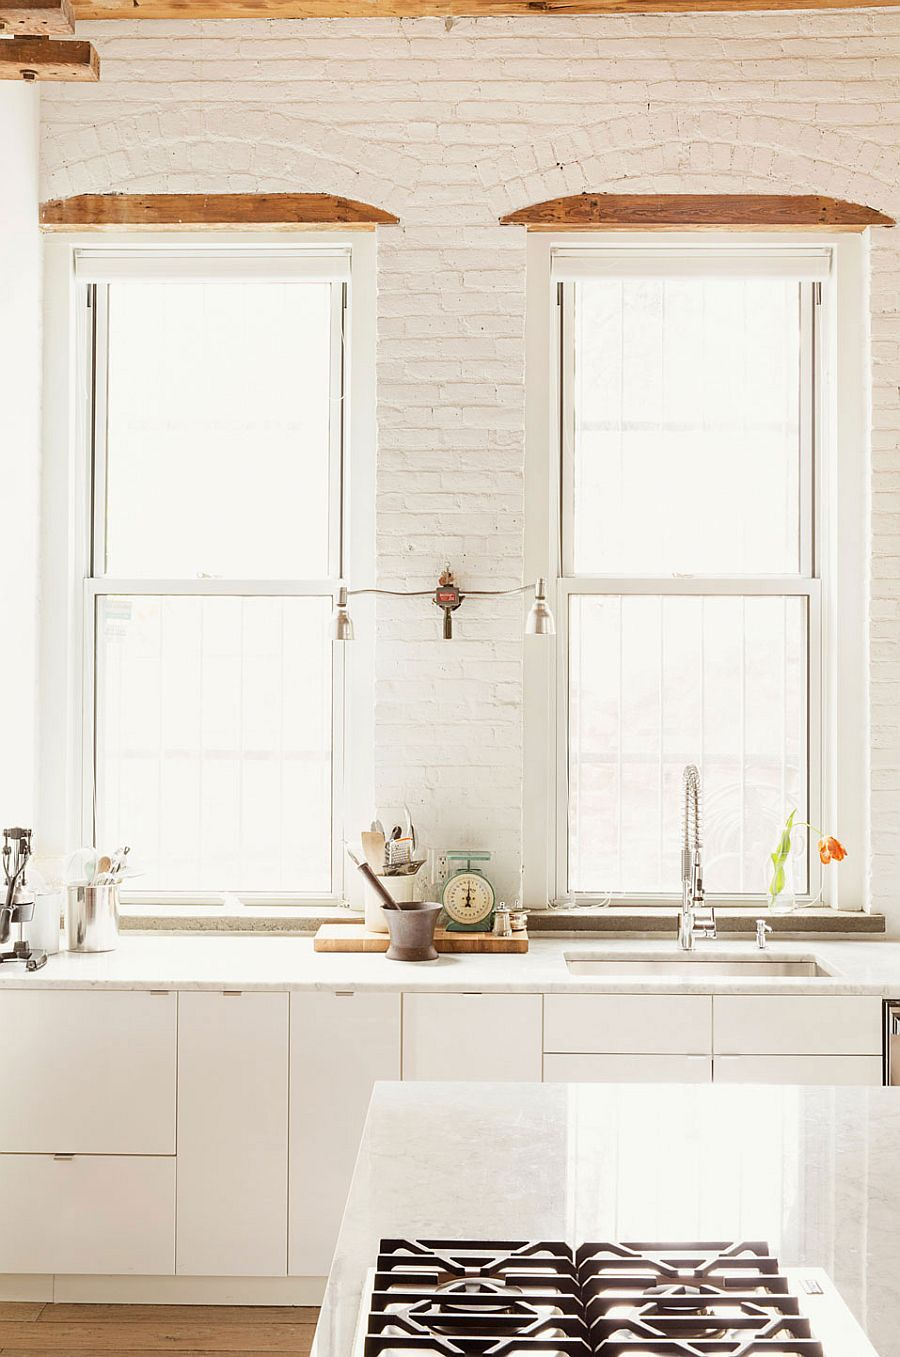 Window on wall decor  kitchen in white with exposed brick walls and large windows